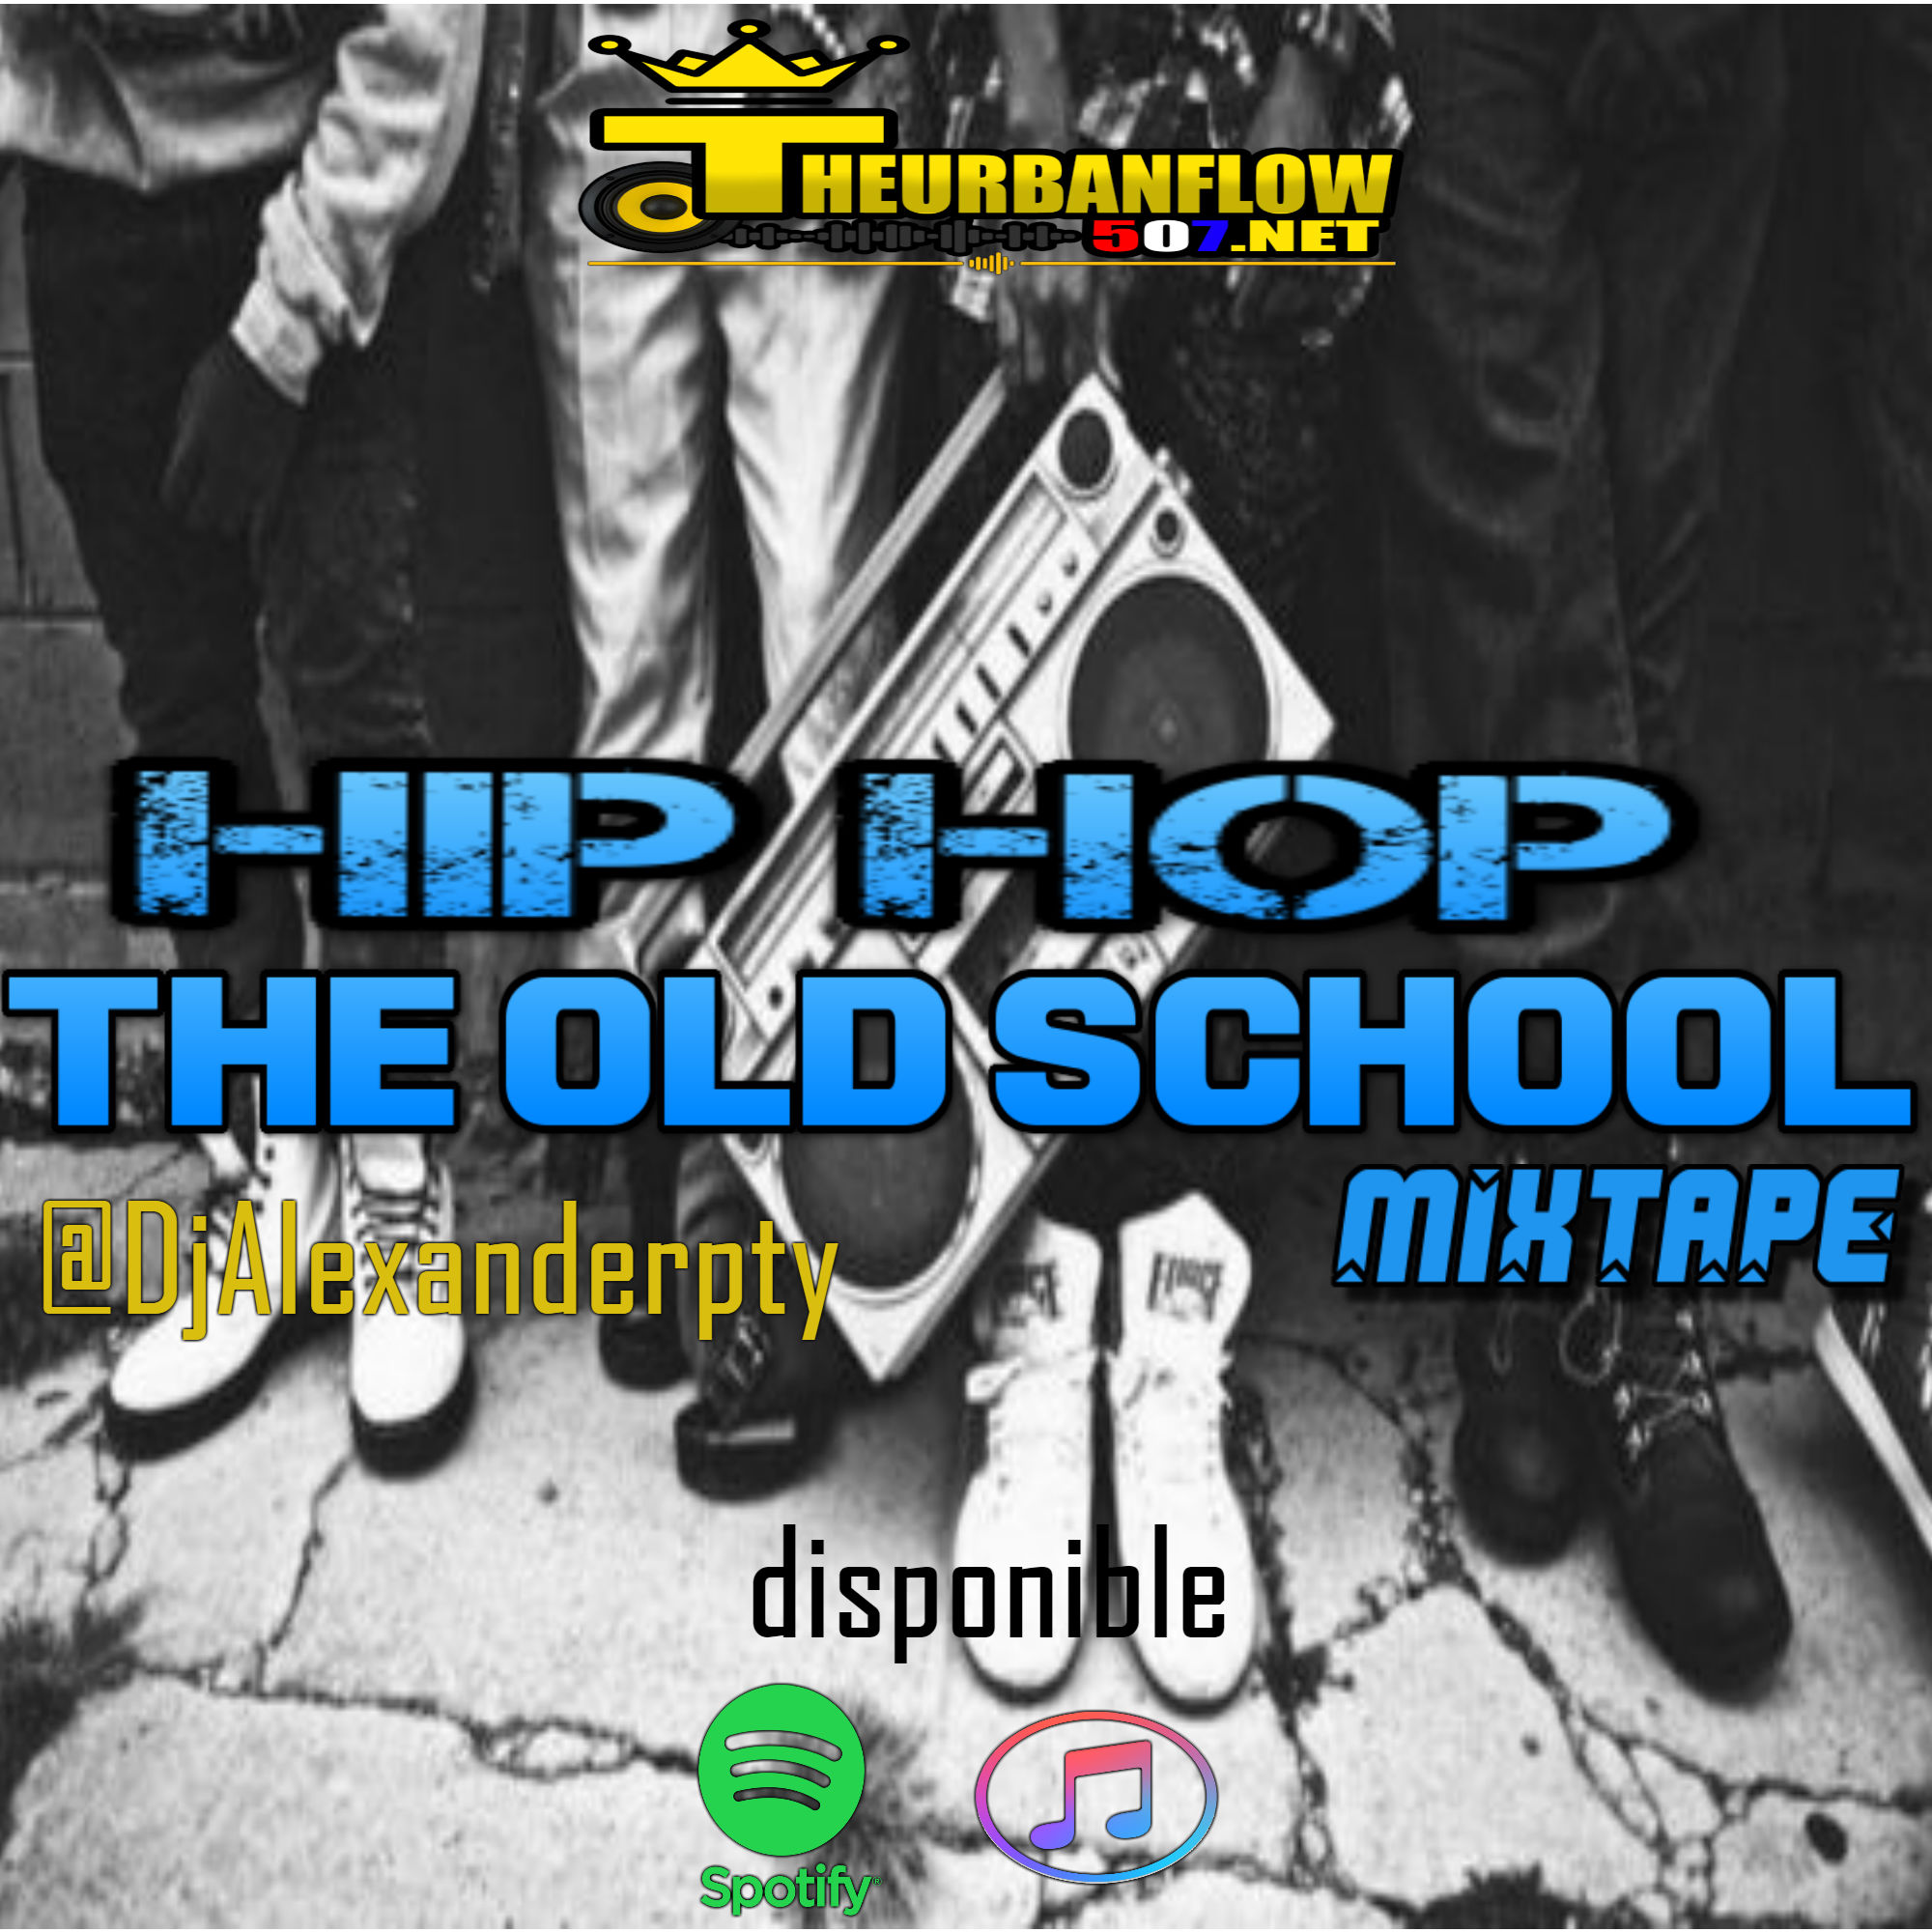 HIP HOP THE OLD SCHOOL MIX - DJALEXANDERPTY